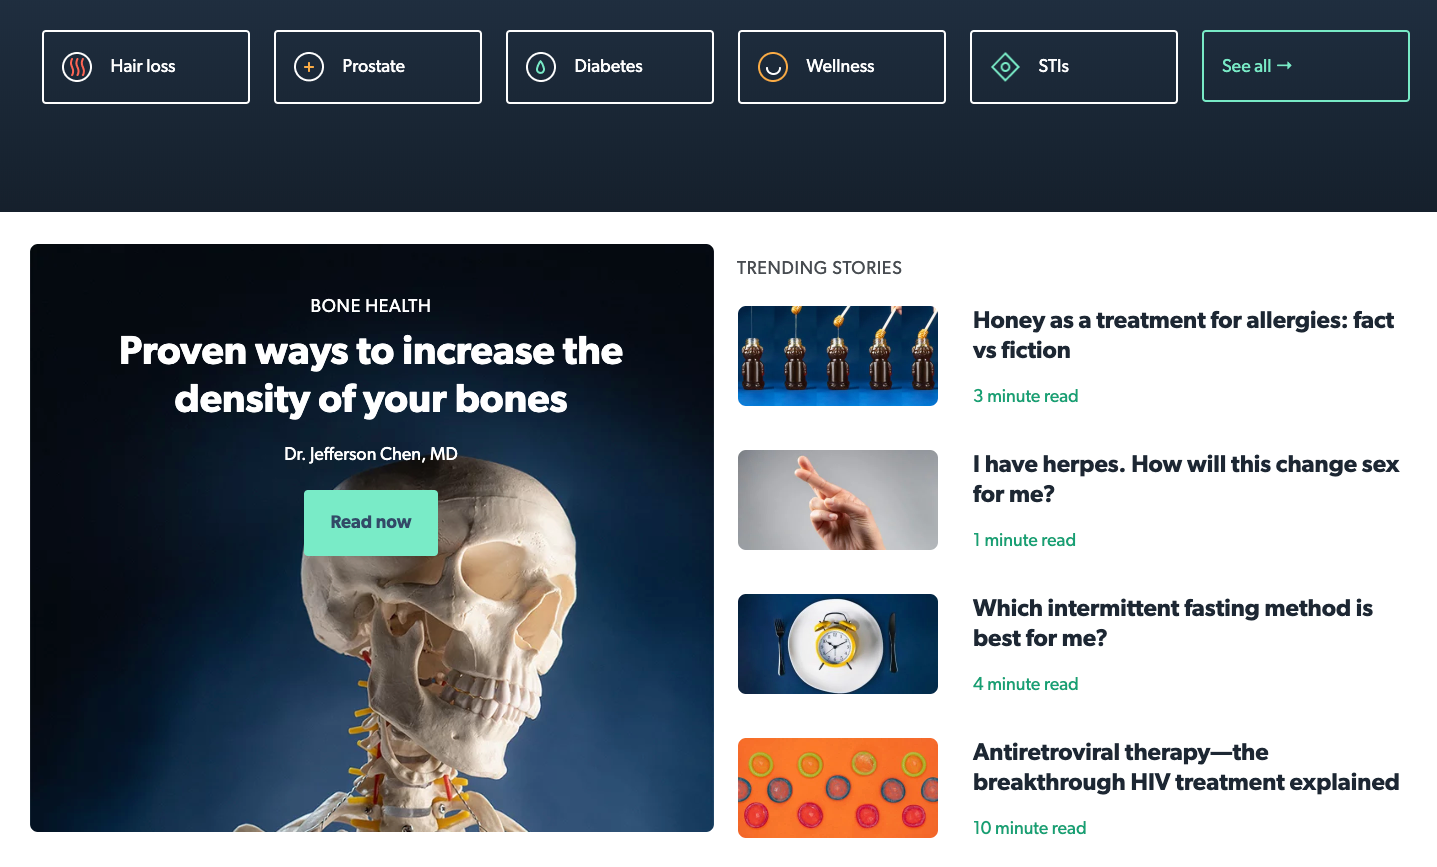 ePharmacy Ro launches doc-approved WebMD rival Health Guide